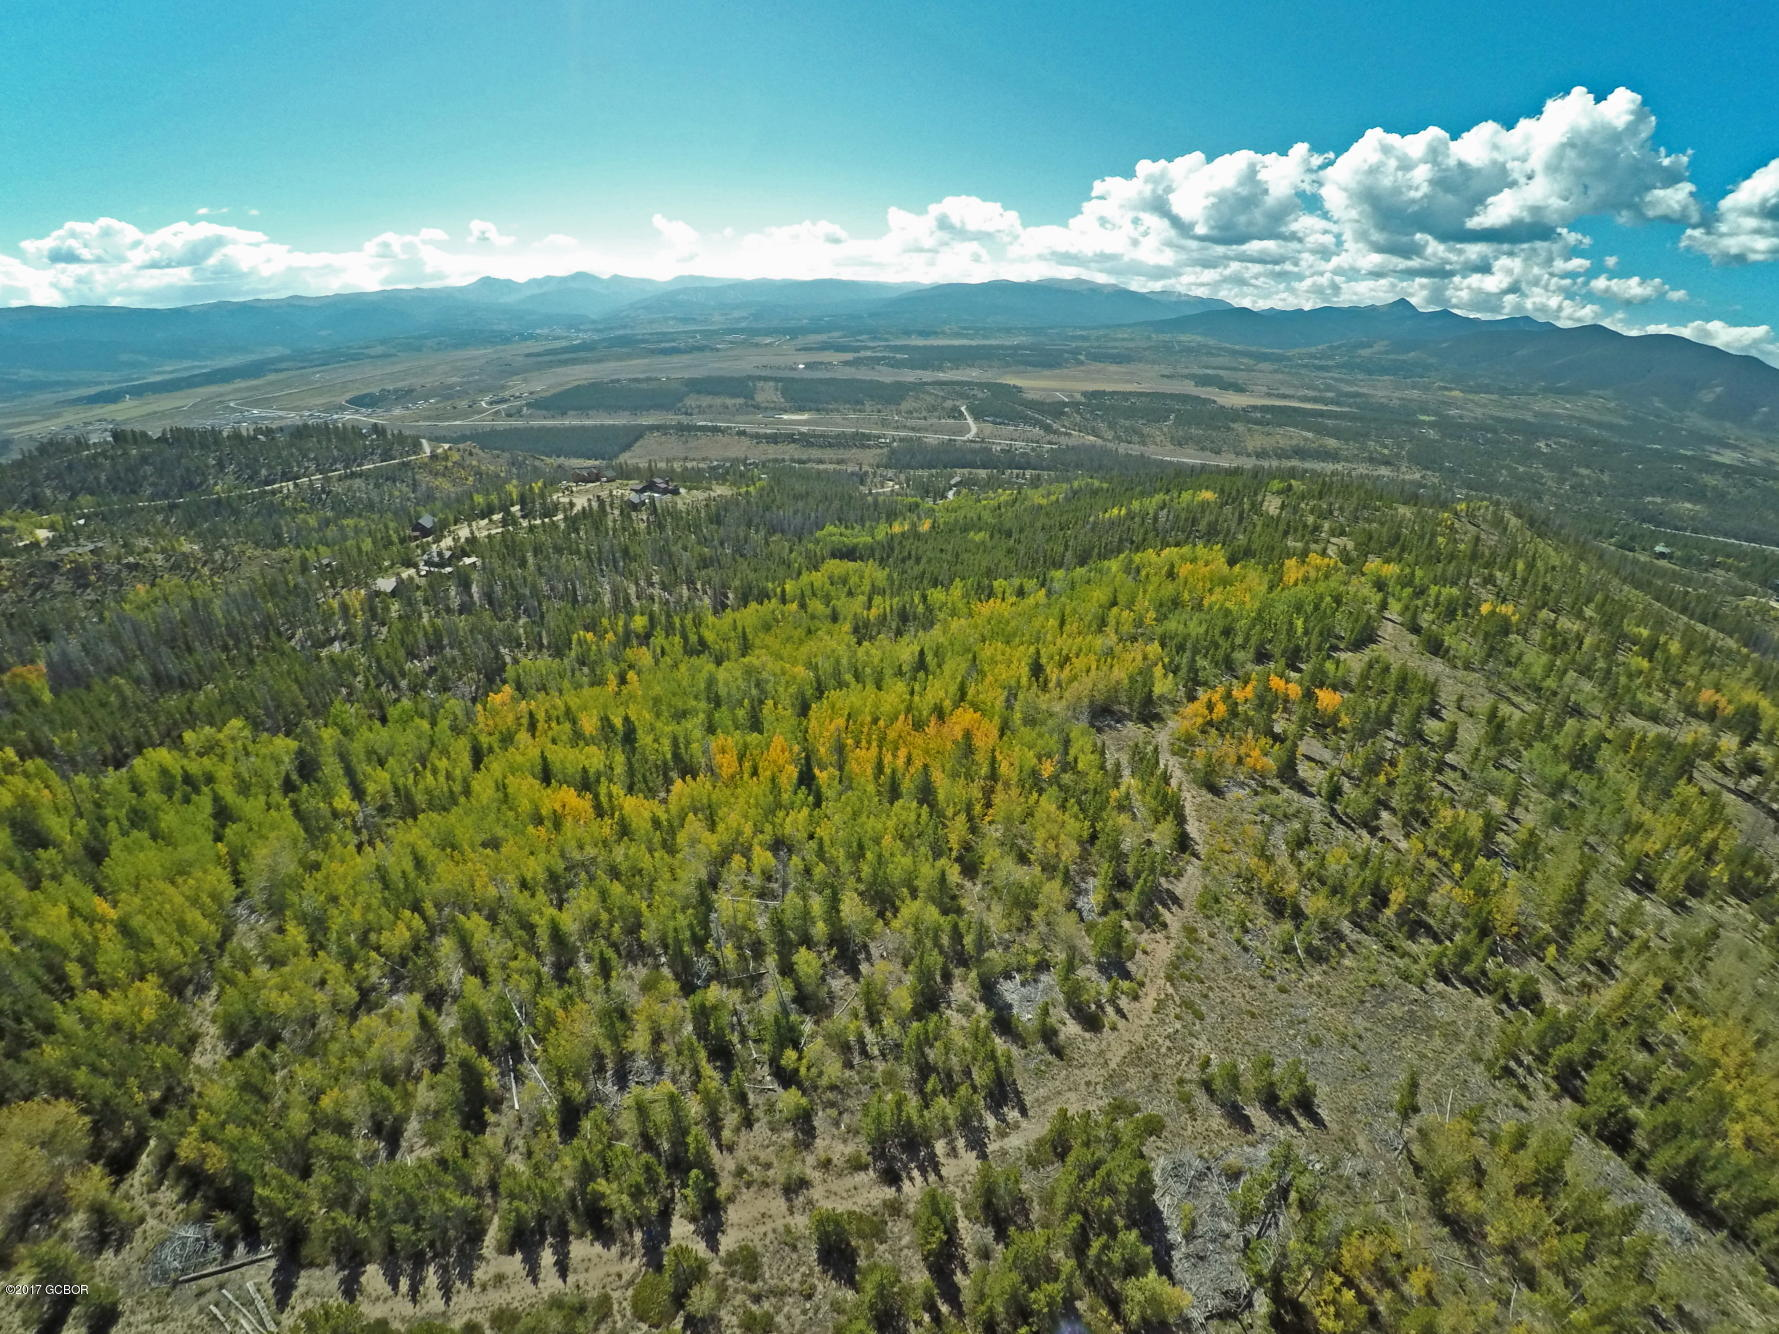 Image of  for Sale near Tabernash, Colorado, in Grand County: 77.54 acres